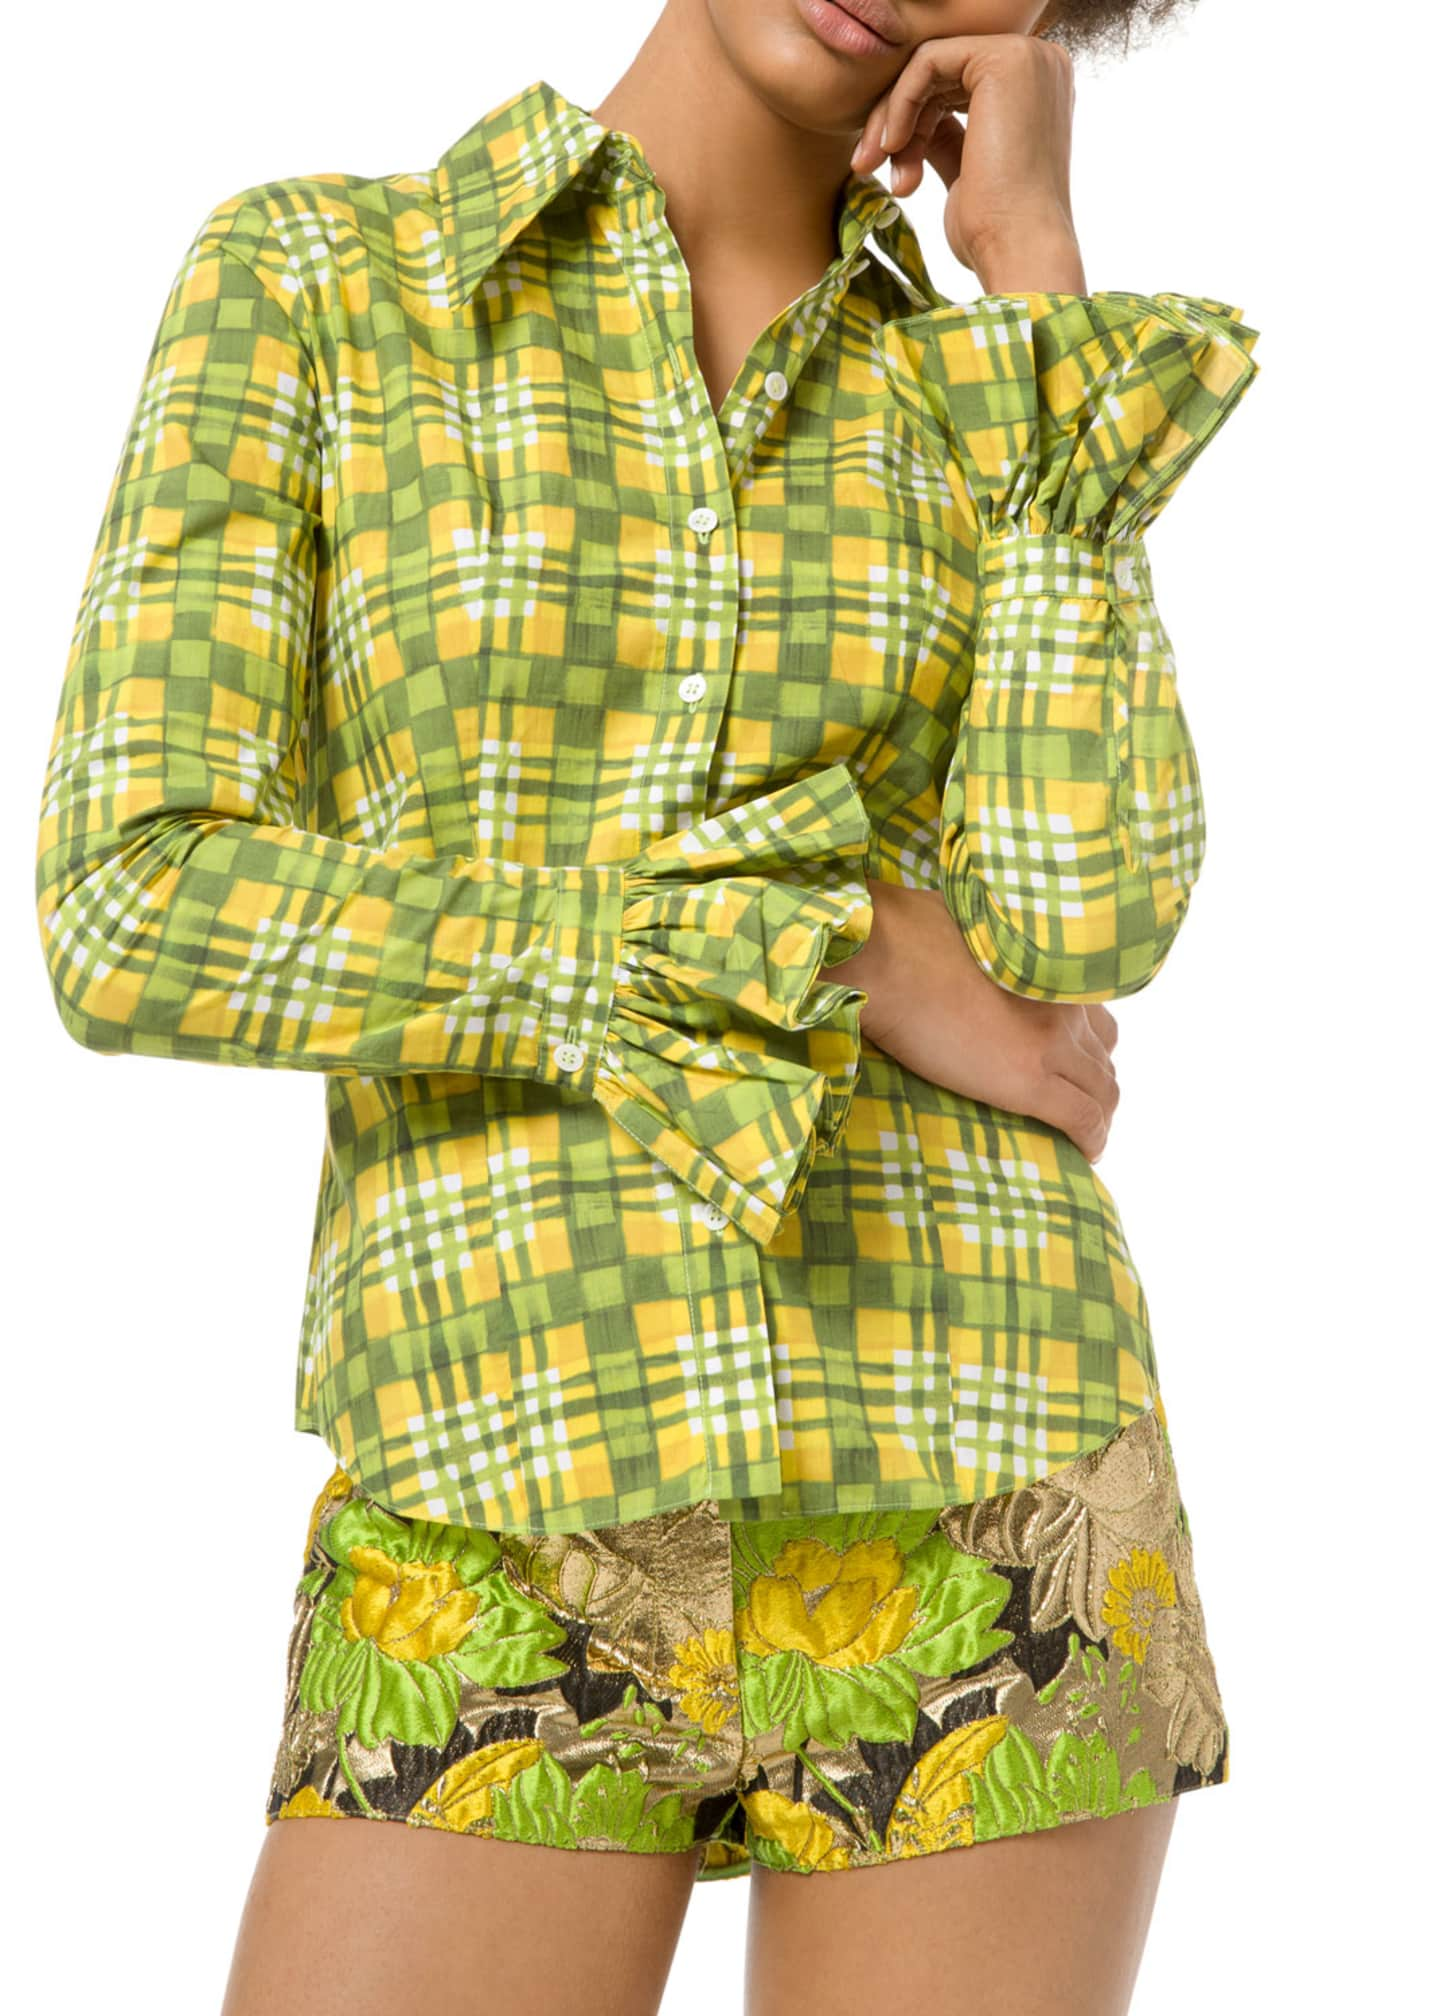 Michael Kors Collection Painterly Madras Poplin Crushed